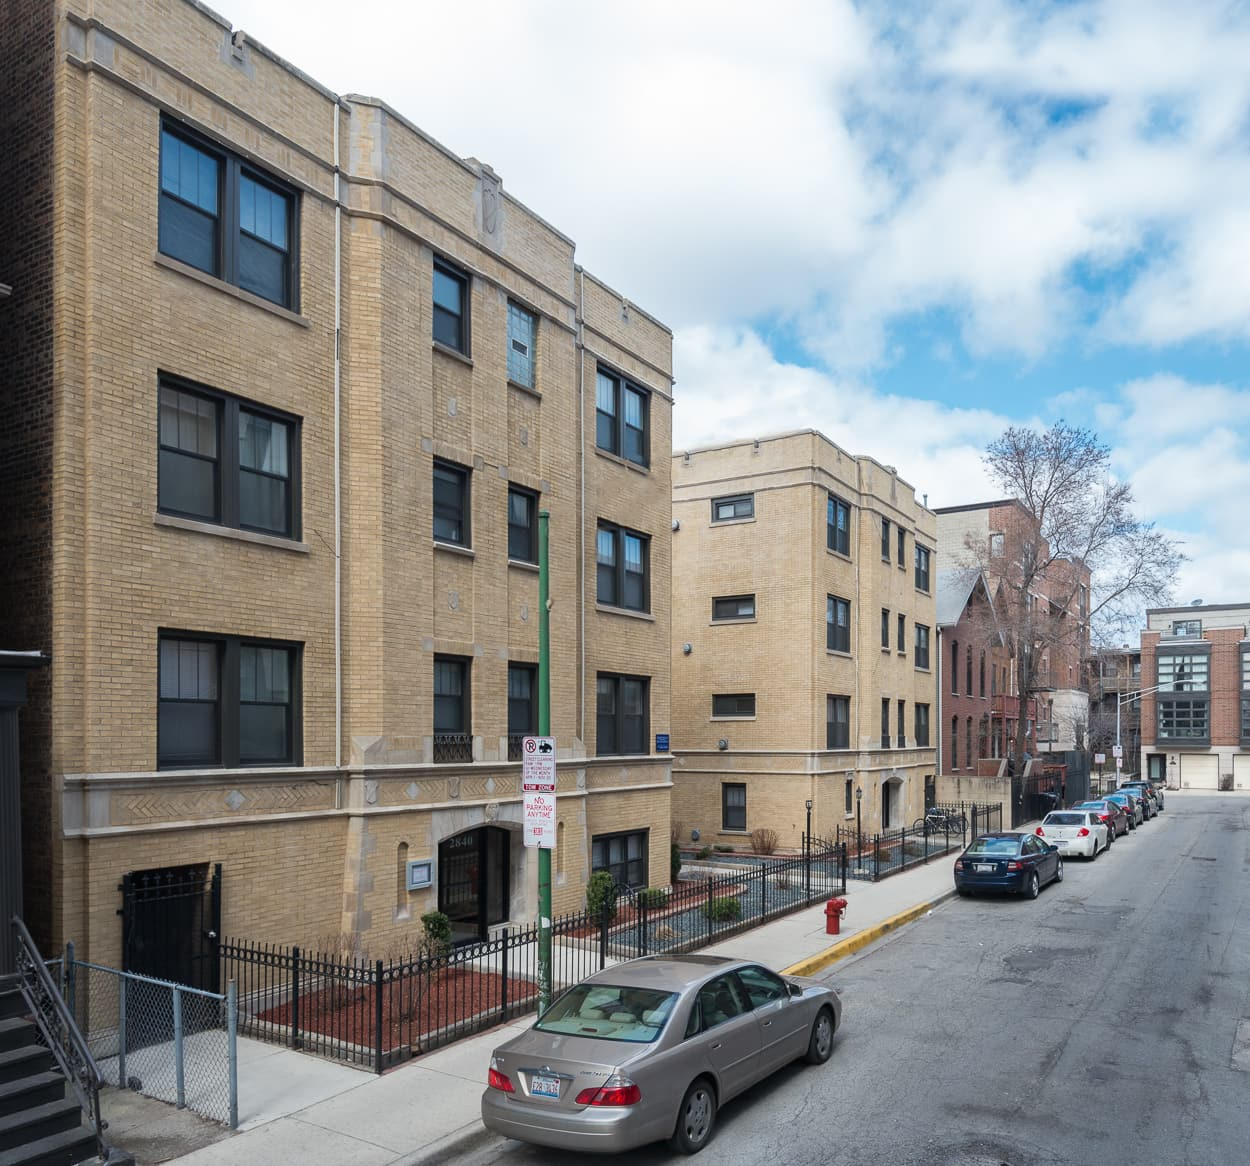 2840-46 N. Orchard, Chicago